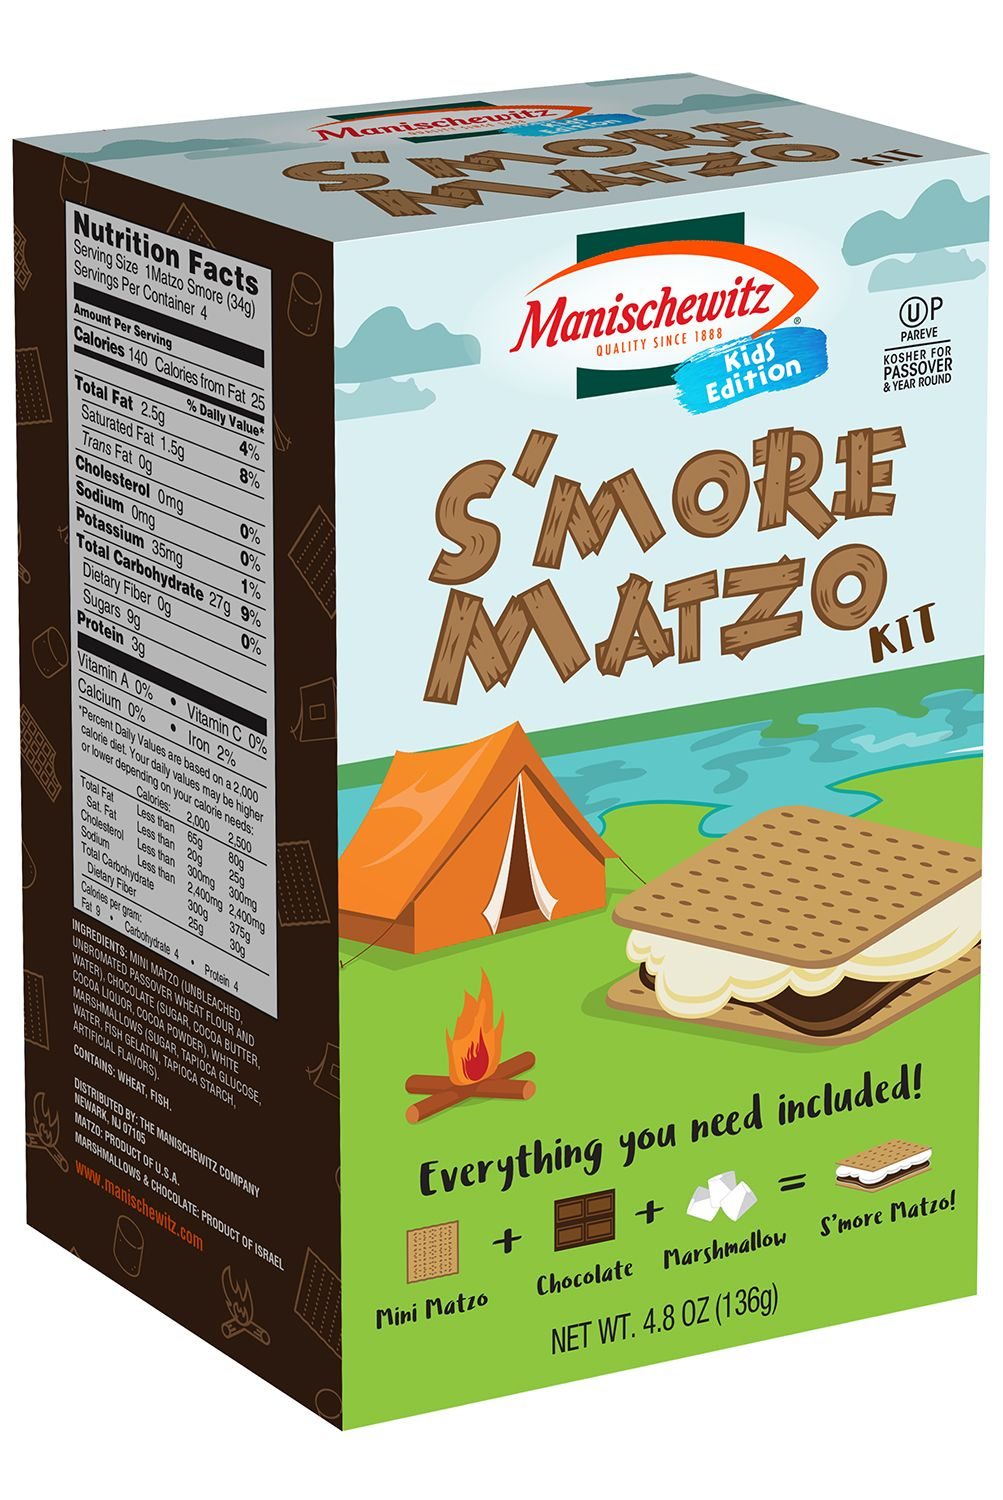 manishewitz smore kit